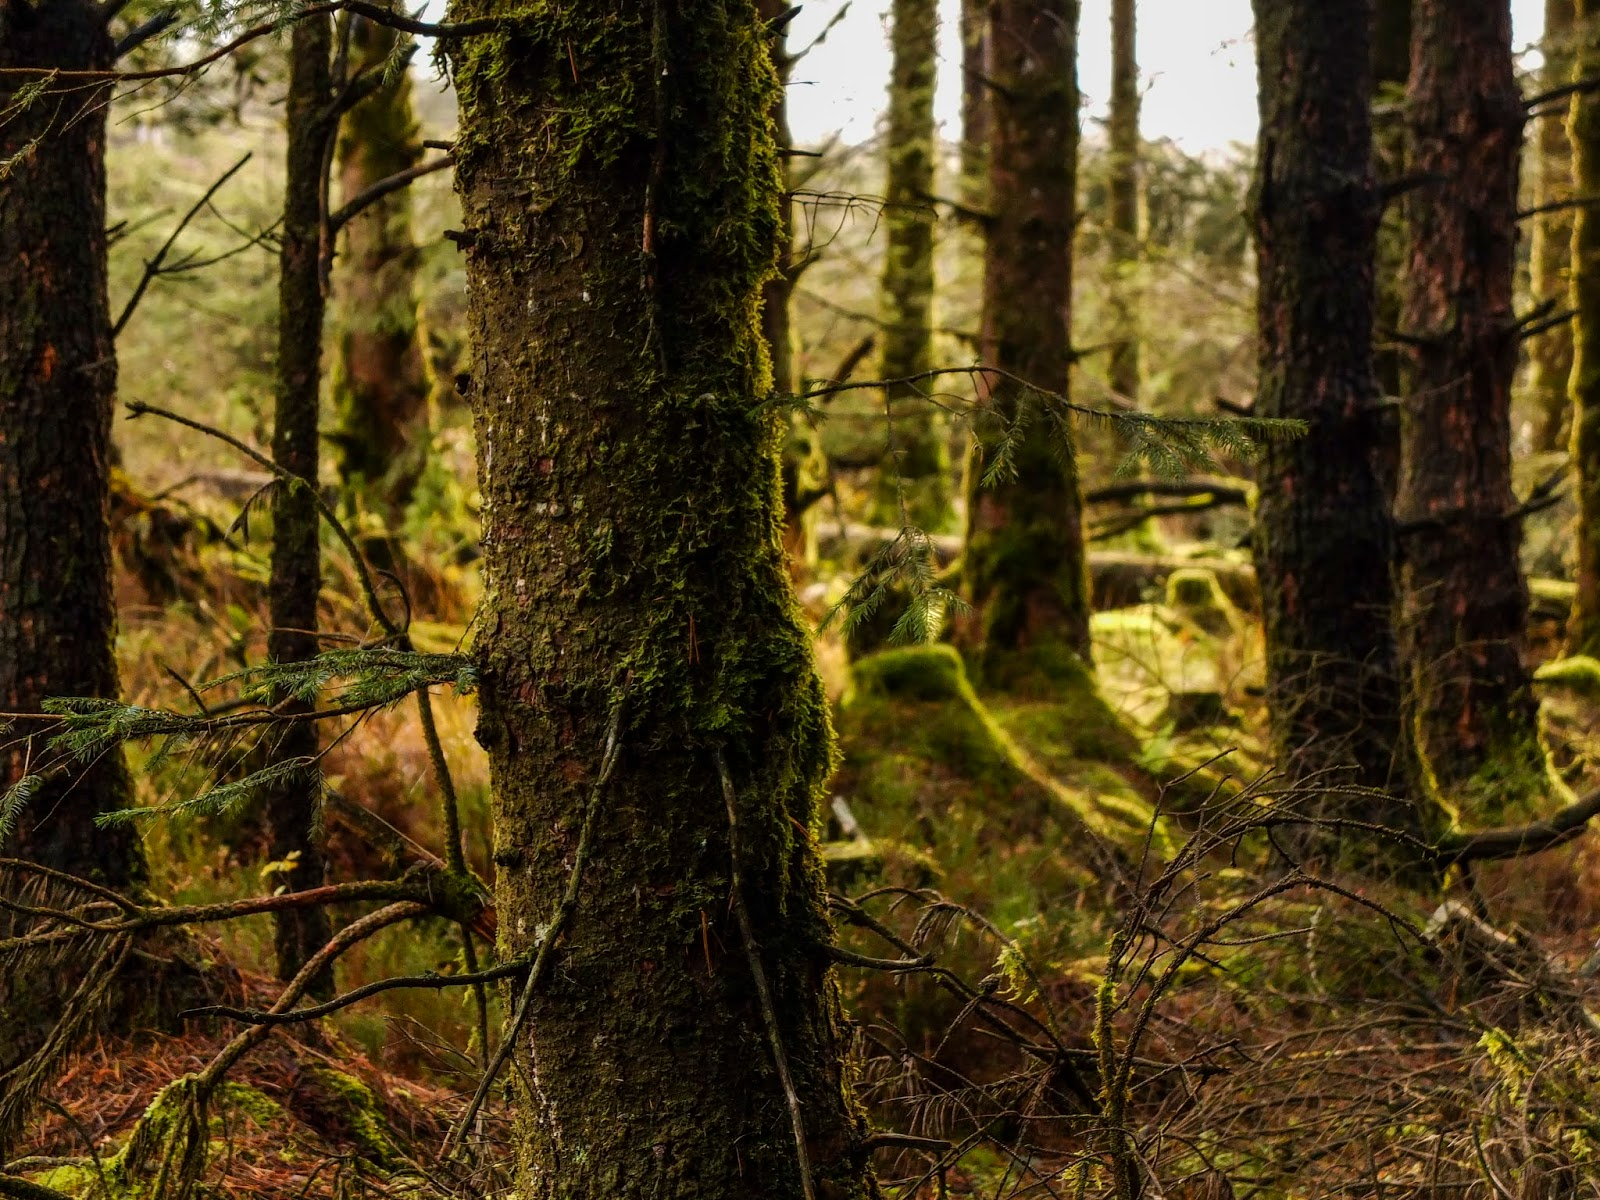 Daylight coming though trees inside a forest in North Cork.